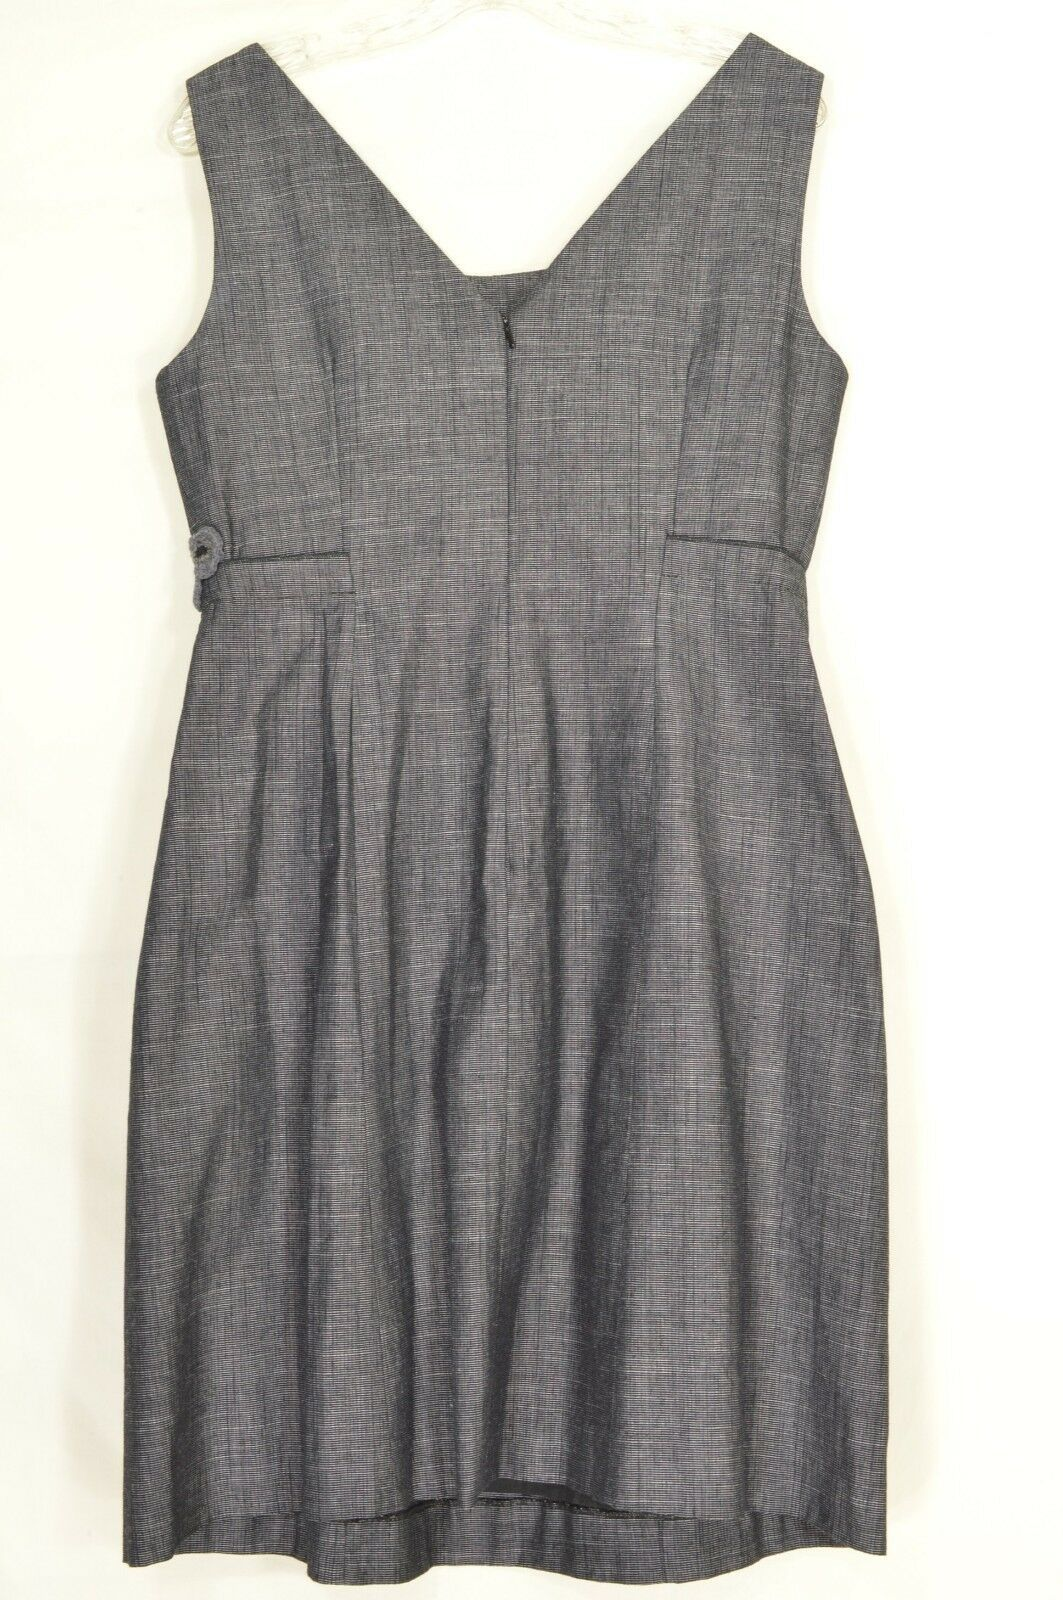 Tabitha dress 10 gray small checks applique embroidery fitted waist pleats